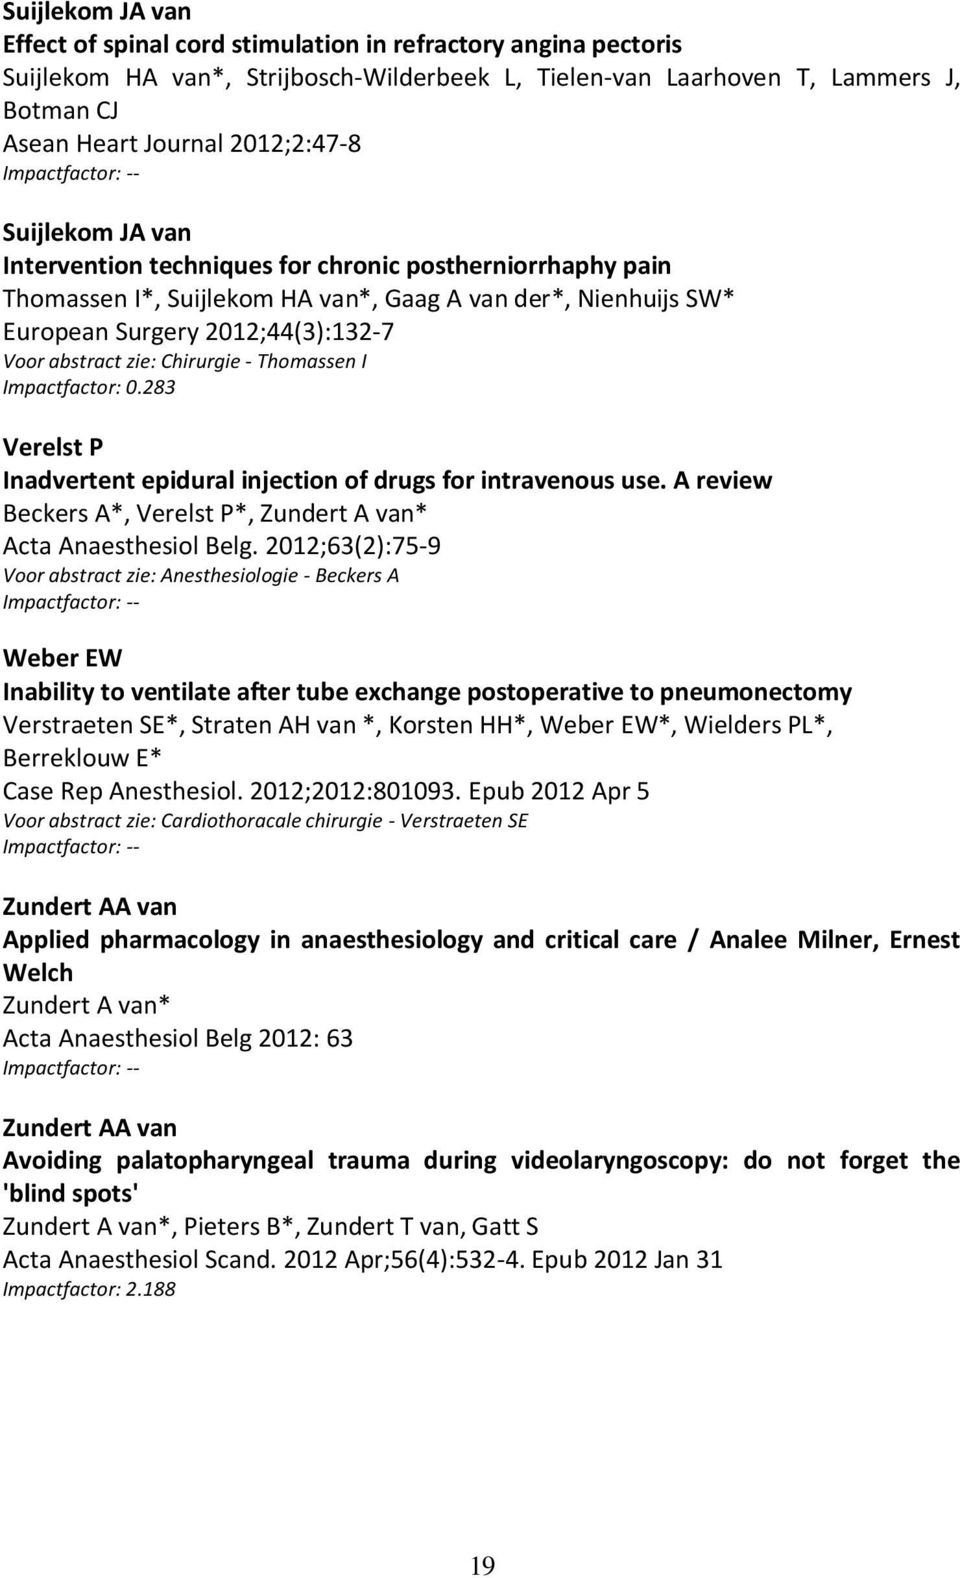 2012;44(3):132-7 Voor abstract zie: Chirurgie - Thomassen I Impactfactor: 0.283 Verelst P Inadvertent epidural injection of drugs for intravenous use.